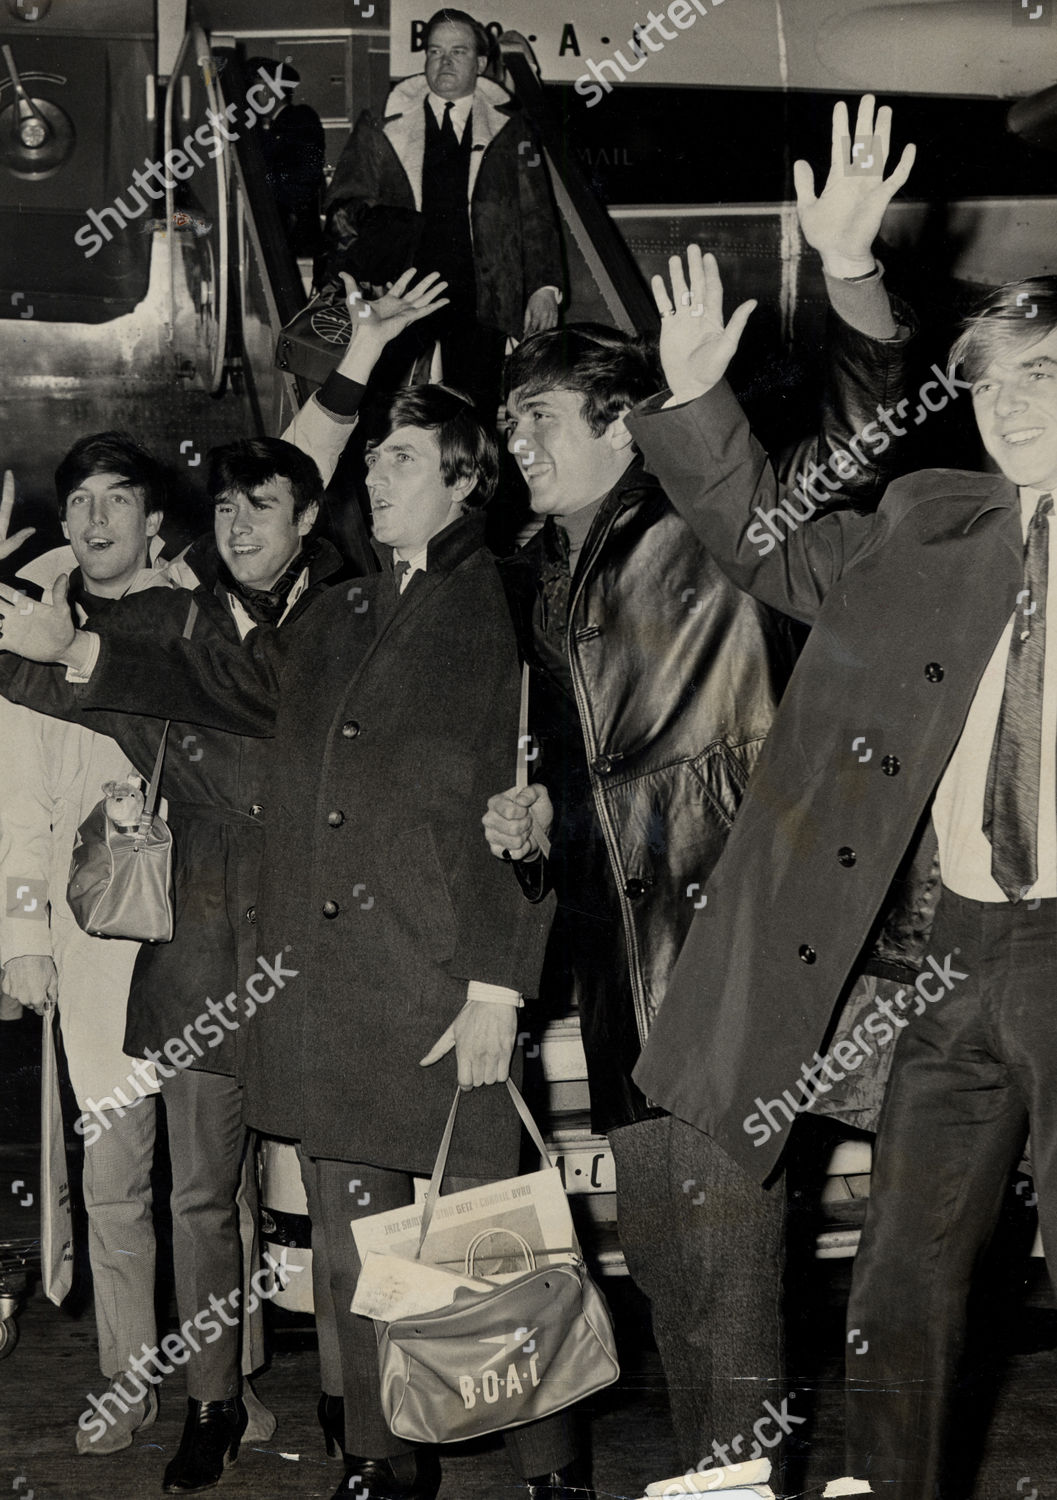 Dave Clark Five Pop Group Pictured London Editorial Stock